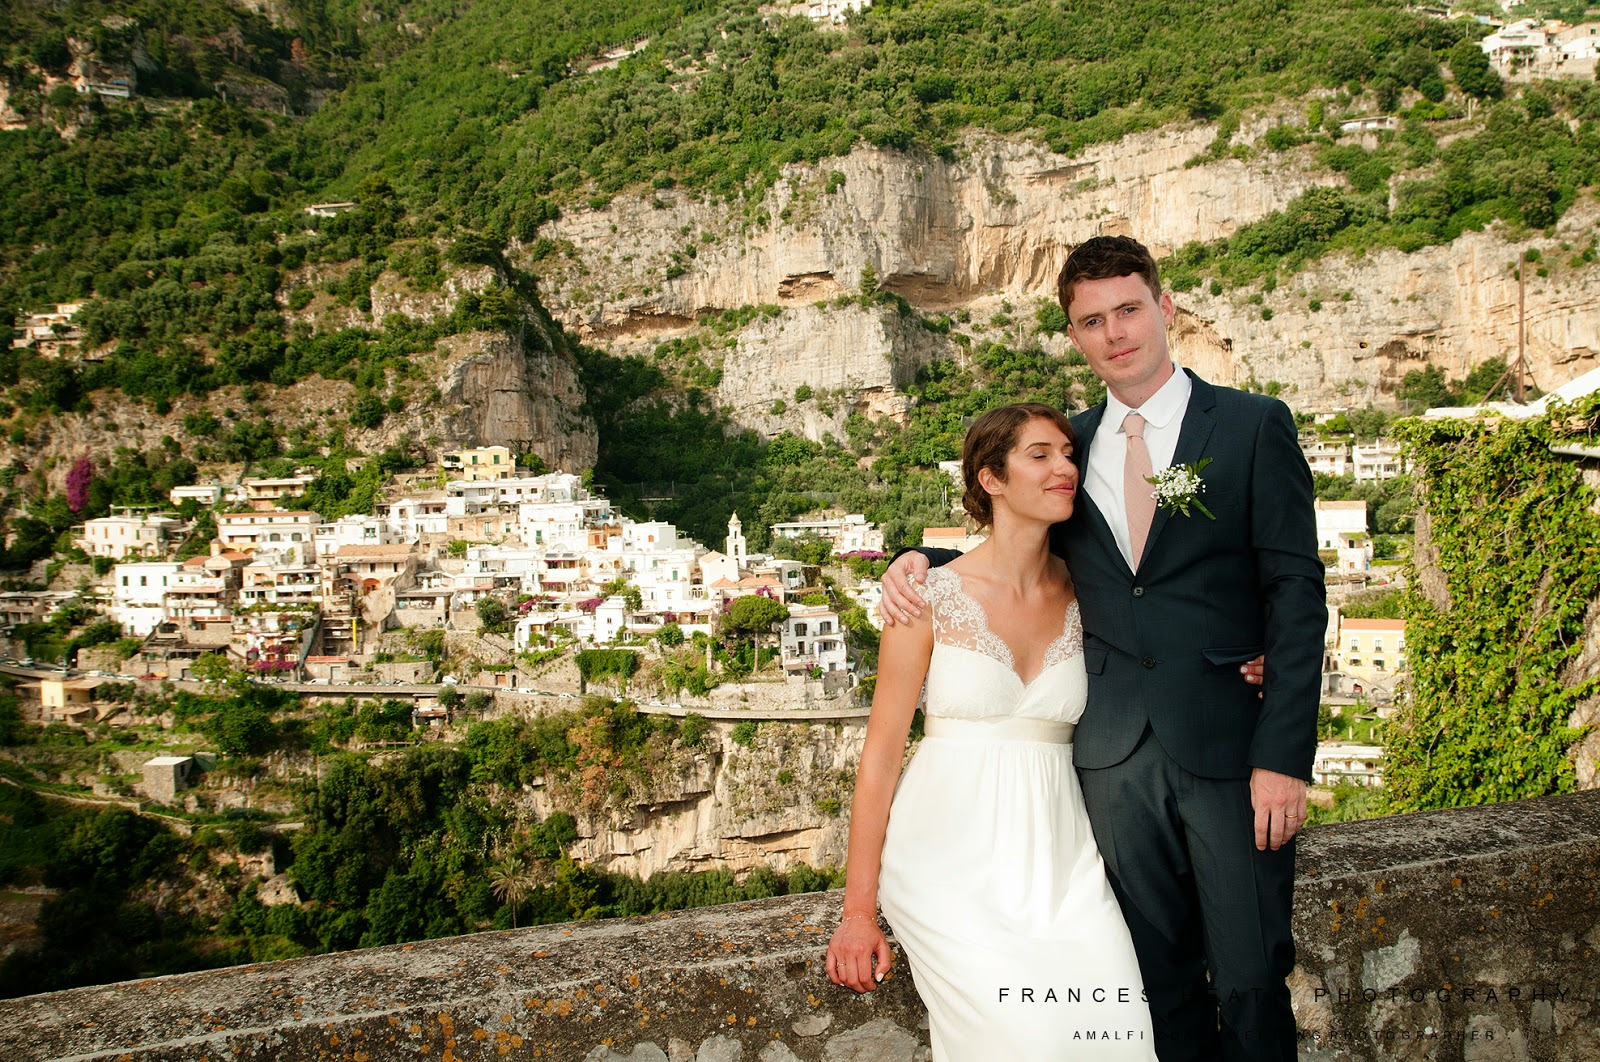 Rustic wedding in Positano